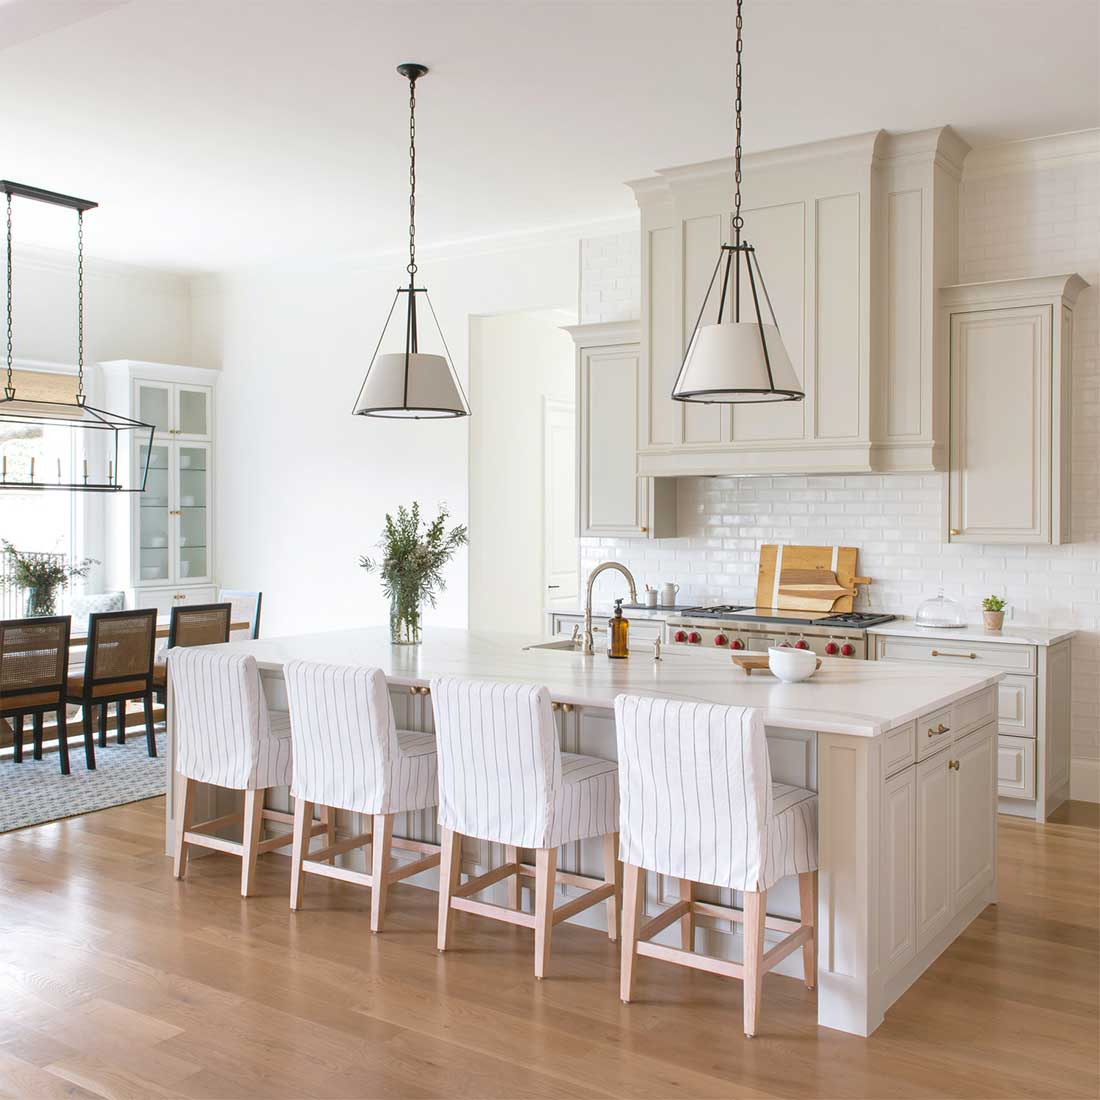 Why White Kitchen Interior Is Still Great For 2019: Choosing The Right Range Hood For A Kitchen